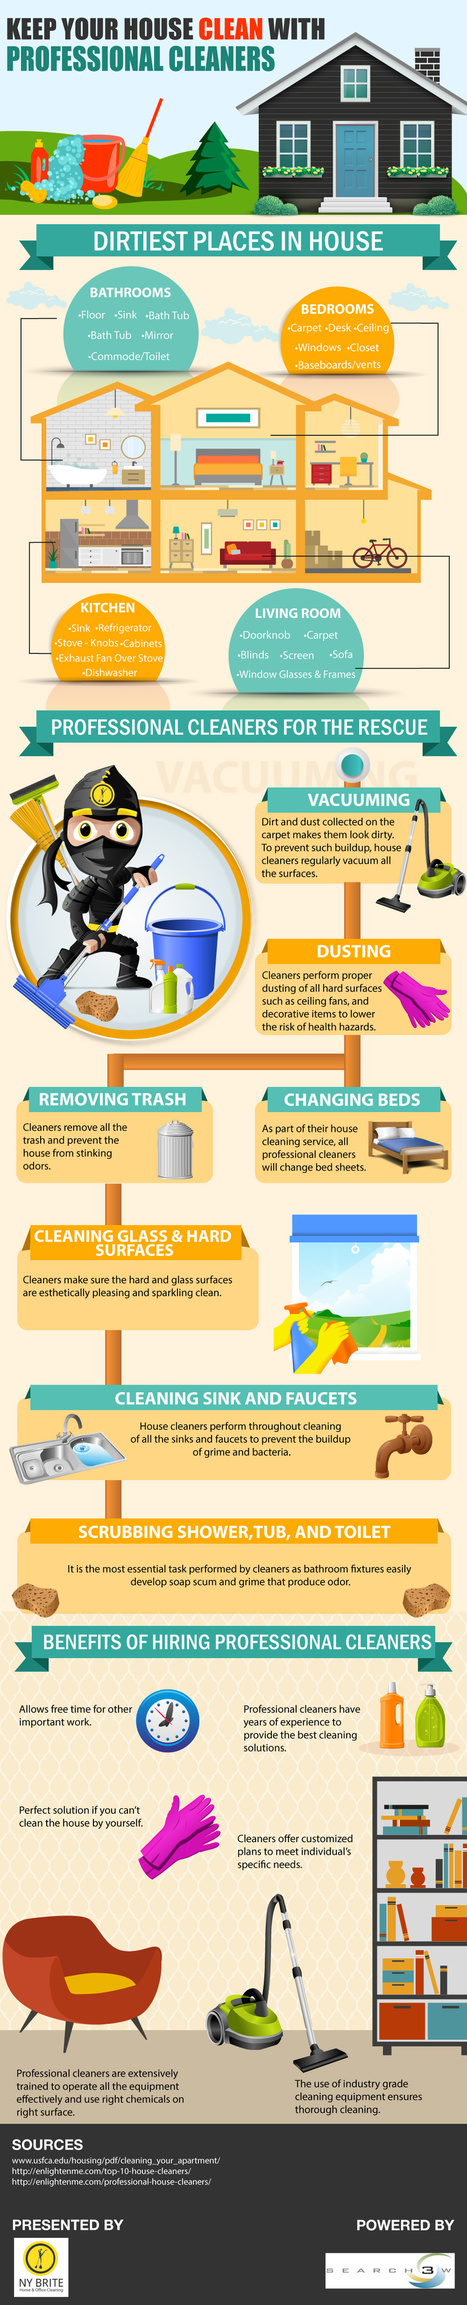 Keep Your House Clean with Professional Cleaner | Infographic | Scoop.it